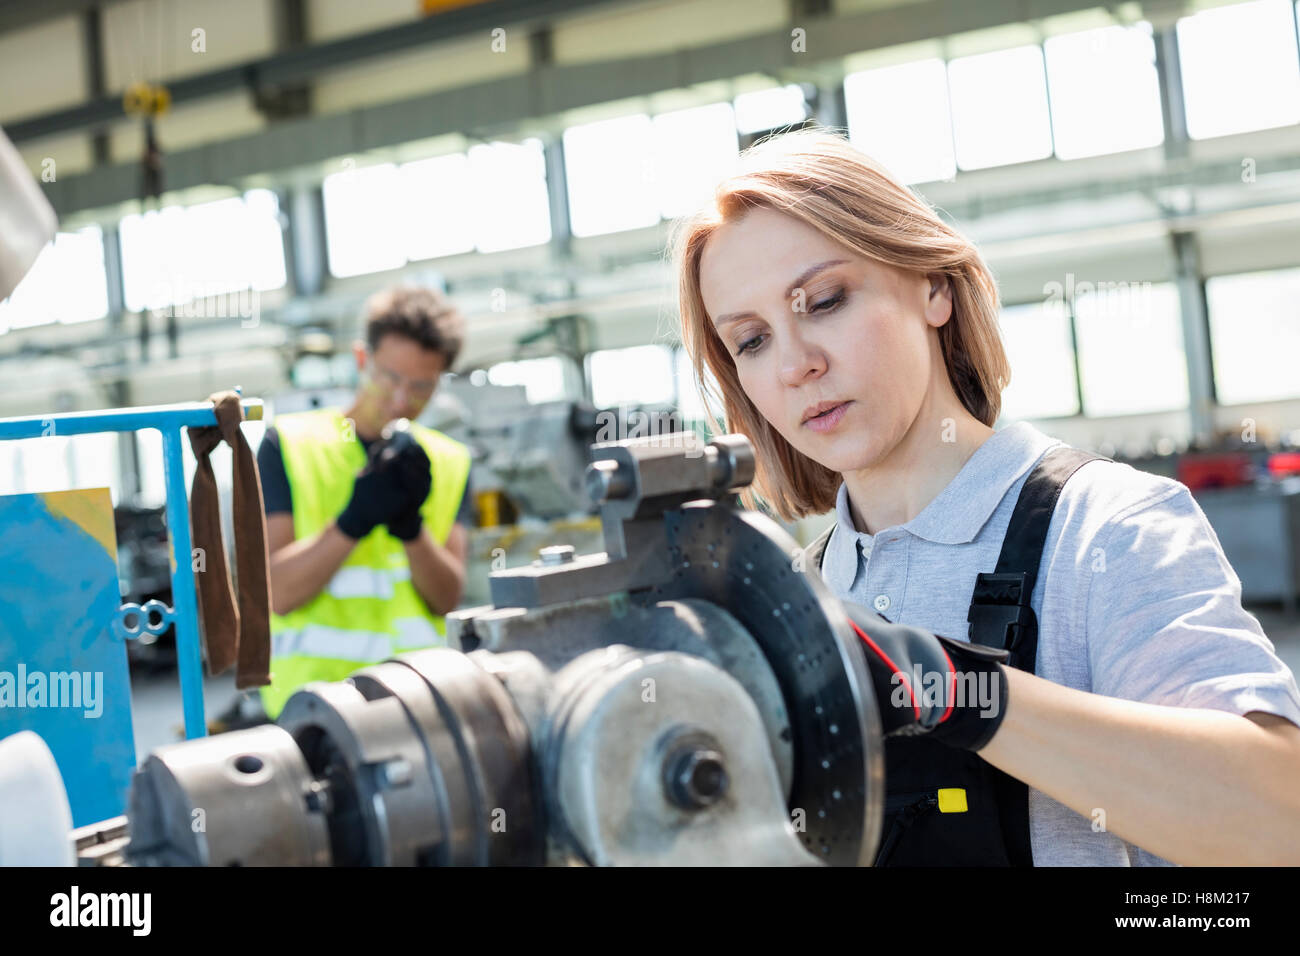 Mature female worker working on machinery with colleague in background at industry Stock Photo